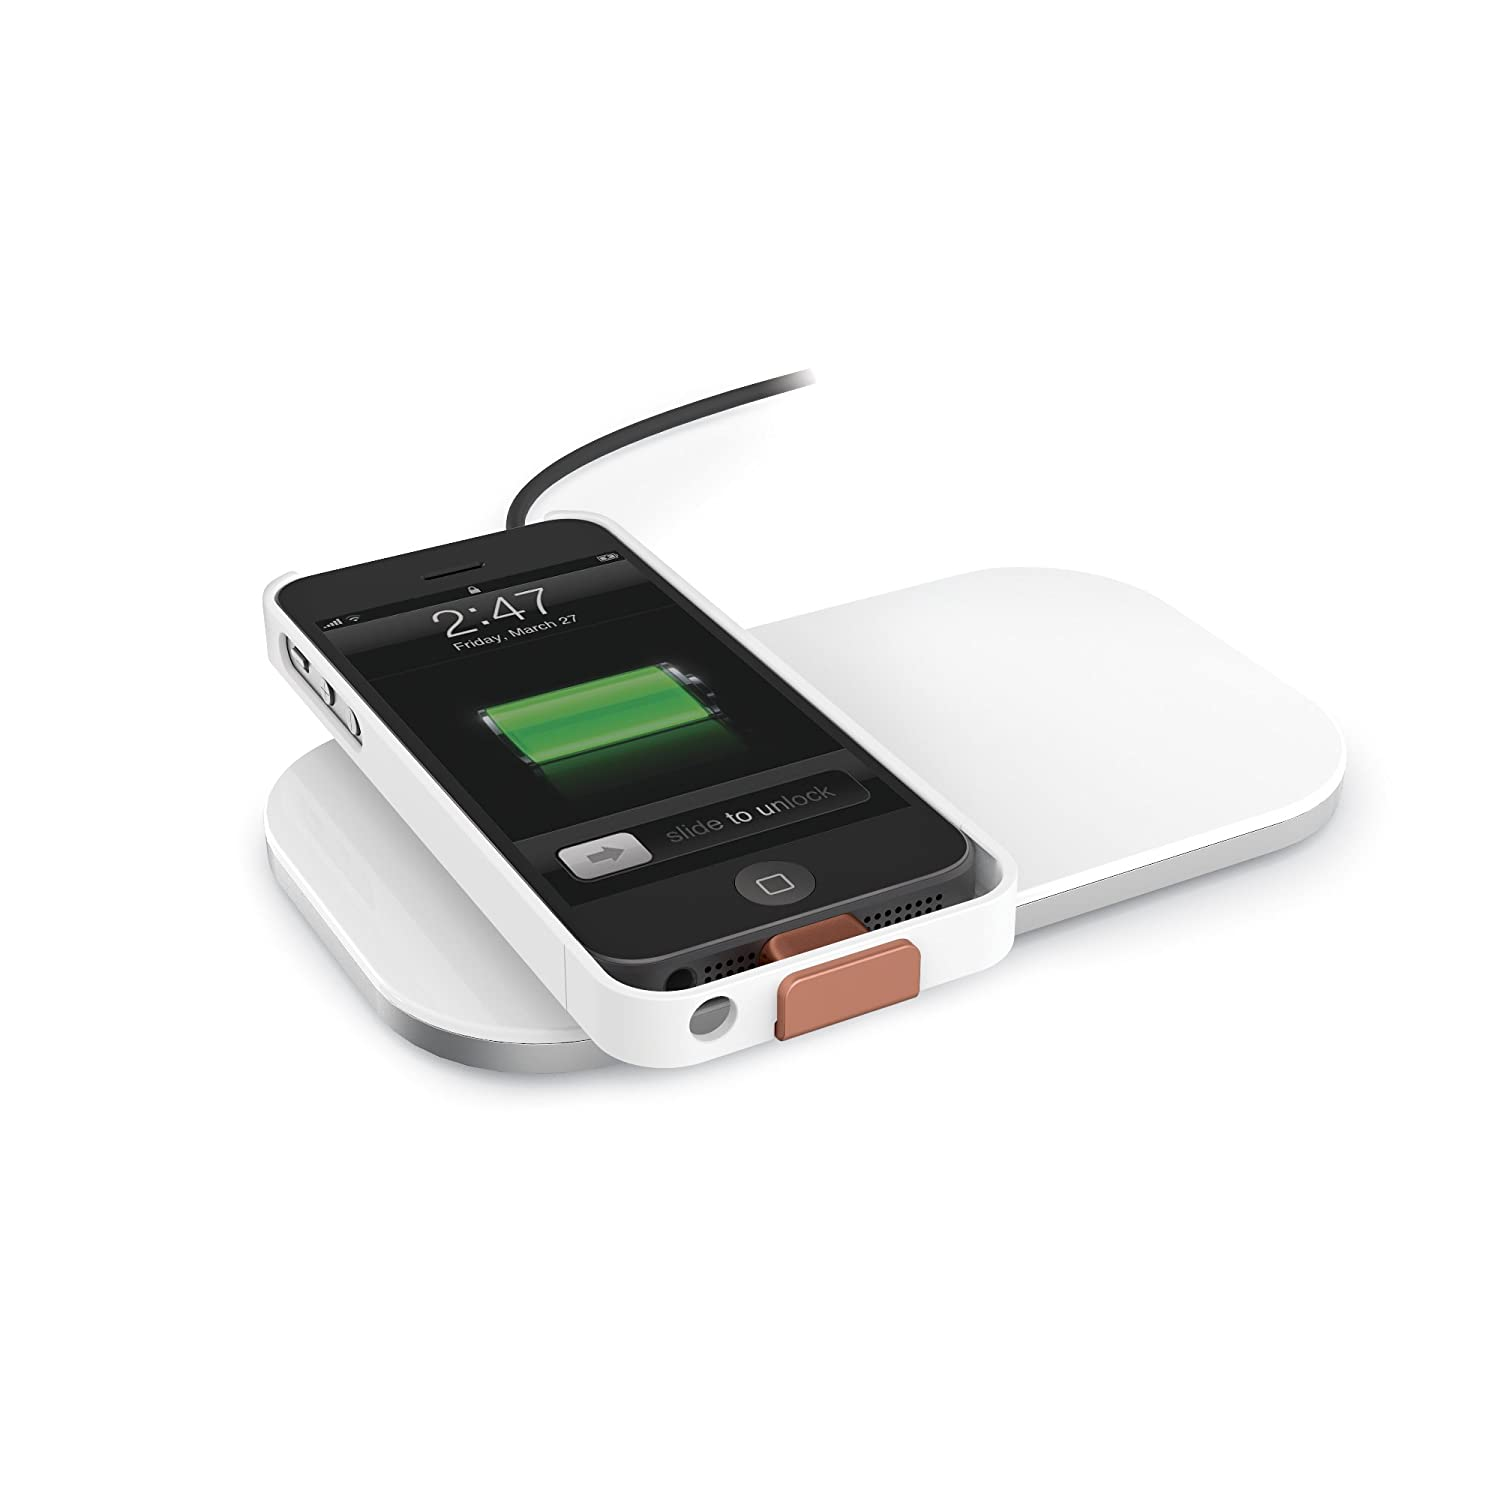 Amazon.com: Duracell Powermat AccessCase - Wireless Charging Case ...